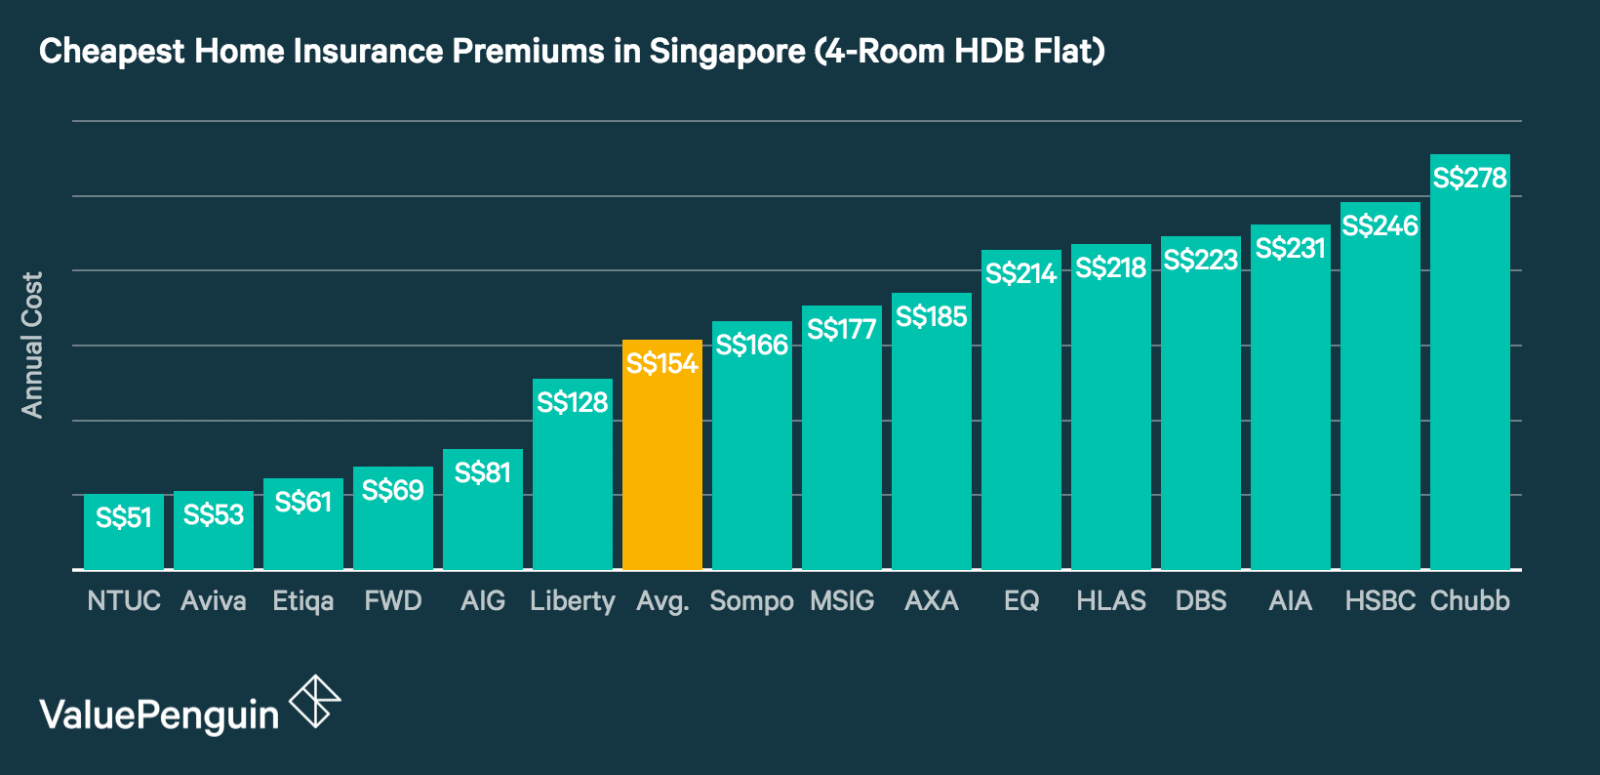 this graph compares the average cost of home insurance in Singapore for 4-room HDB flats from major insurance companies